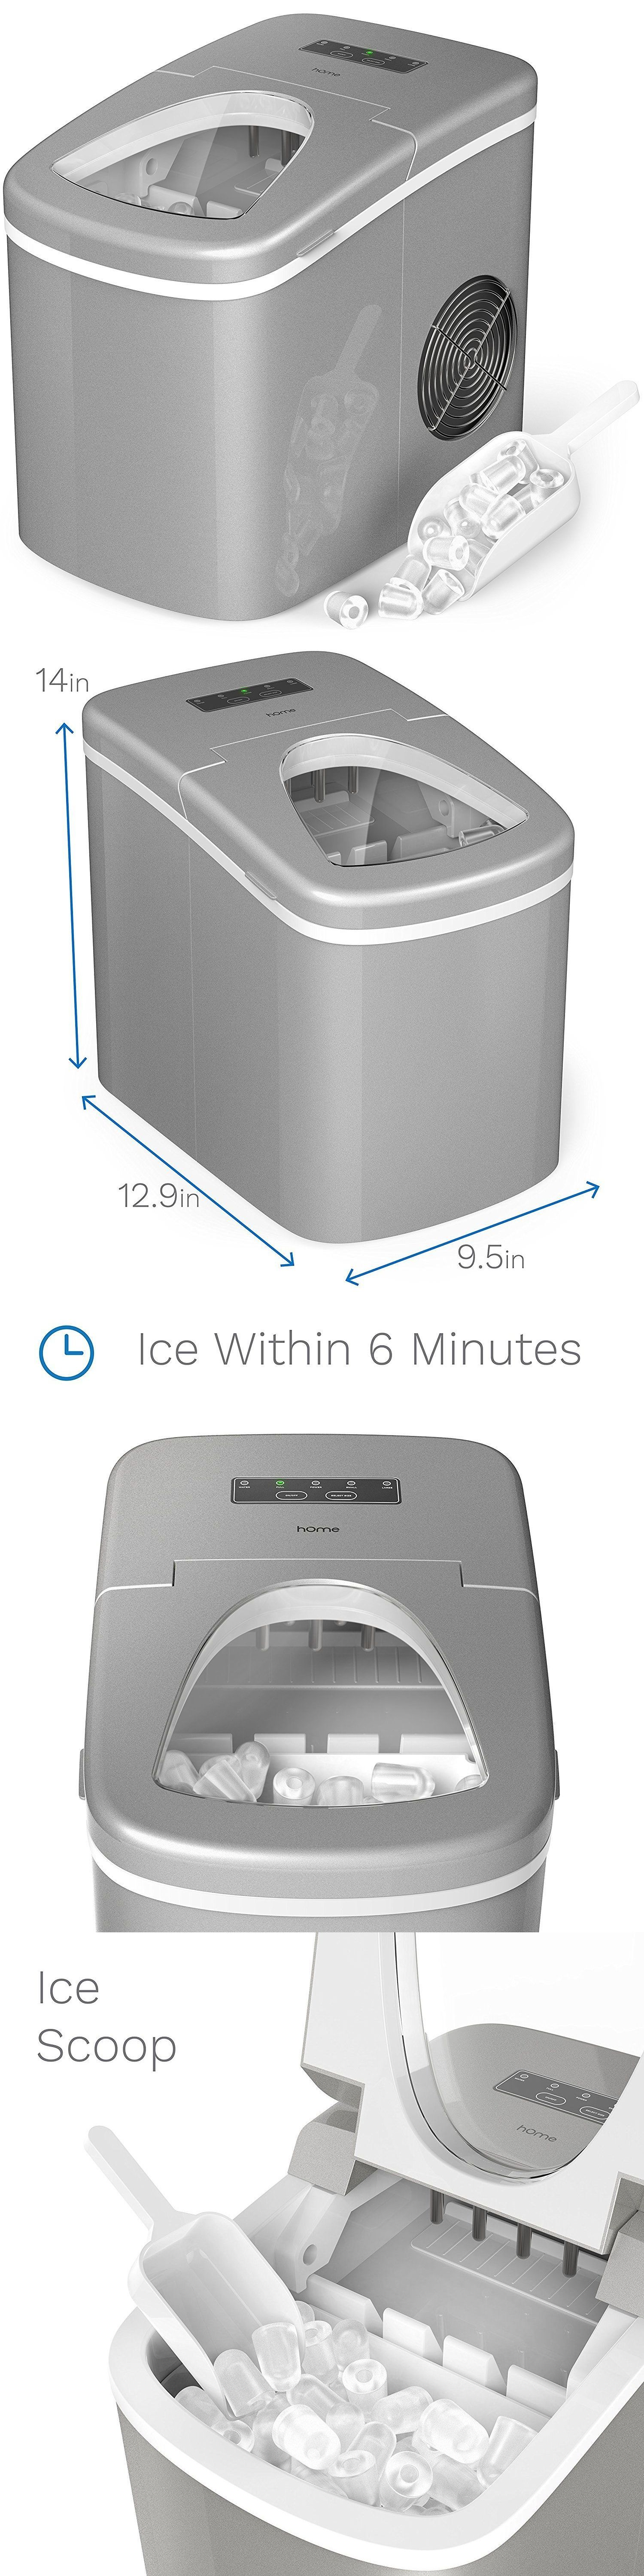 Countertop Ice Makers 122929 Home Portable Countertop Electric Ice Maker Machine W Ice Scoop Silver Buy It Now On Ice Maker Machine Ice Maker Countertops